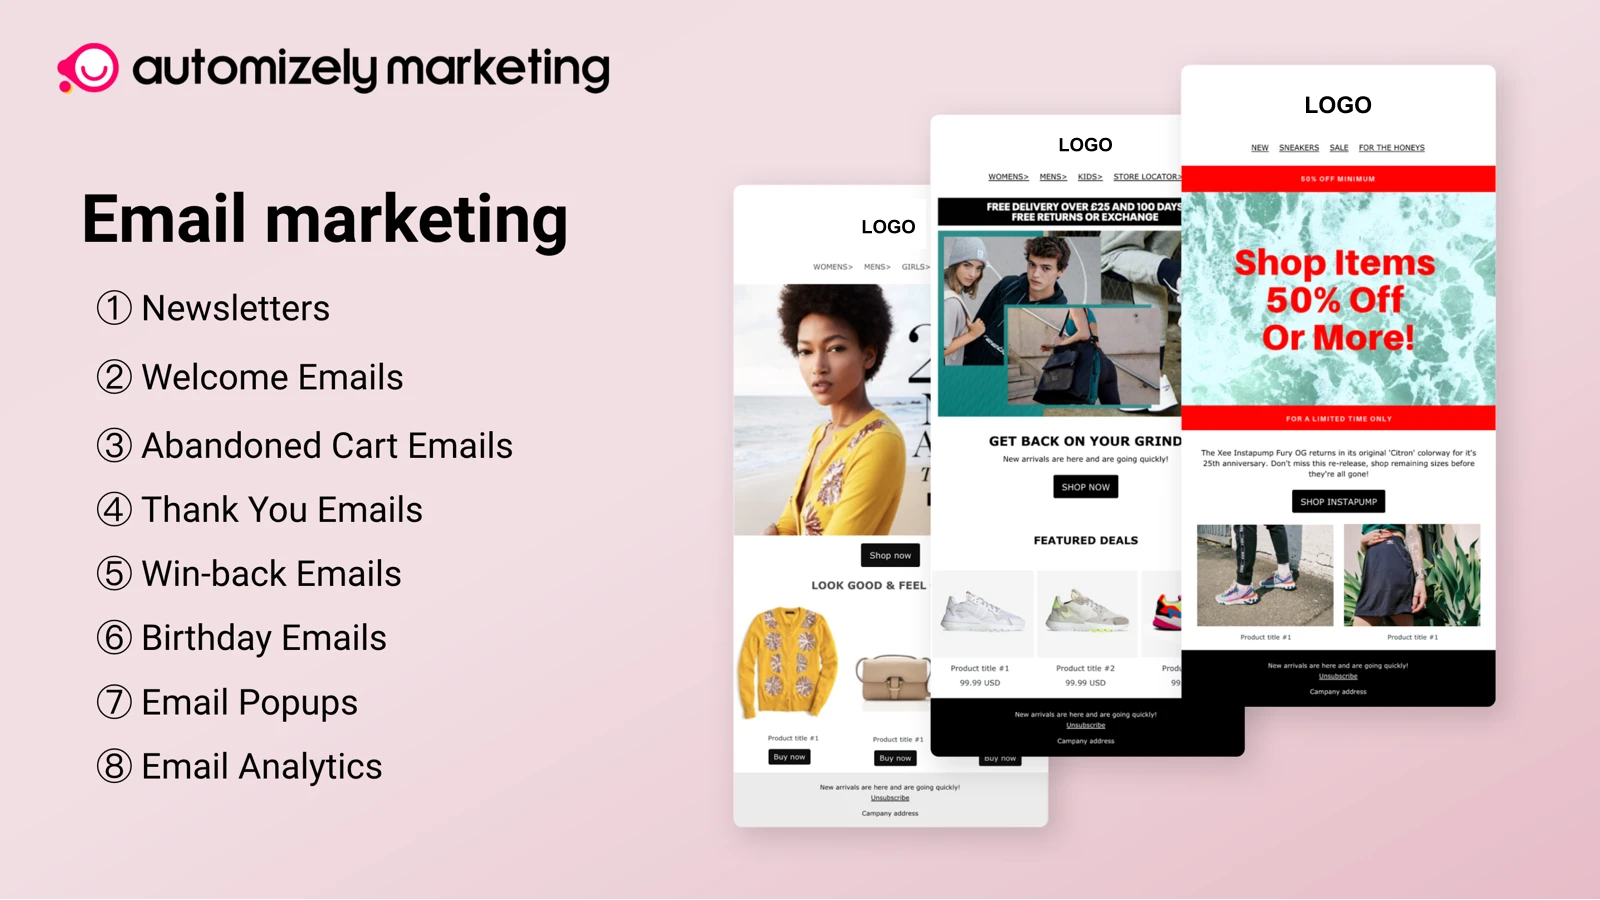 Email Marketing popup - Newsletters, Email popups